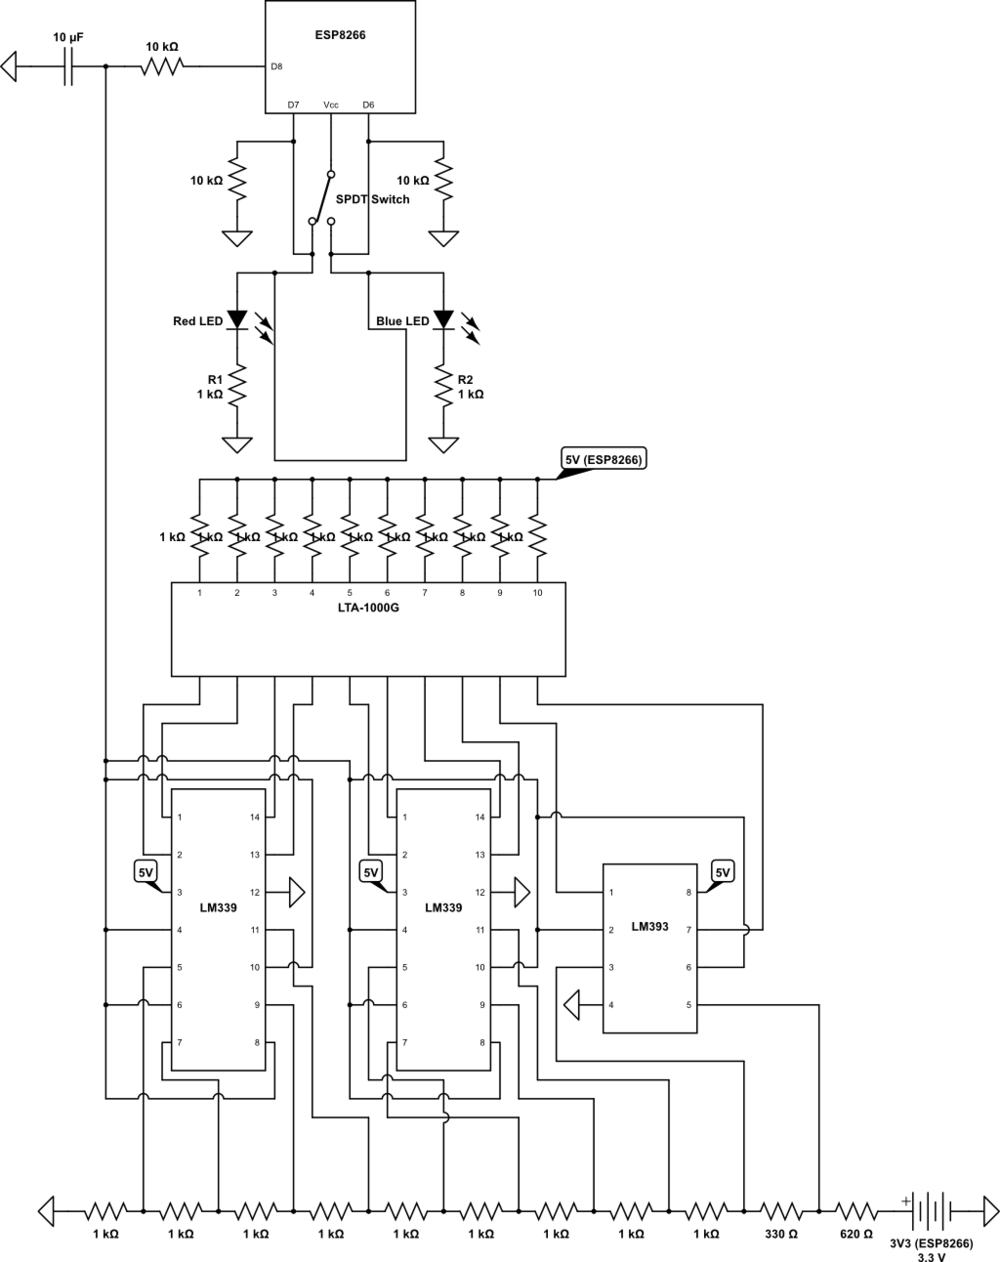 240v ballast wiring diagram new viddyup Two Wire Alternator Wiring Diagram 240v water heater timer wiring diagram wiring diagram for 240v ballast wiring diagram